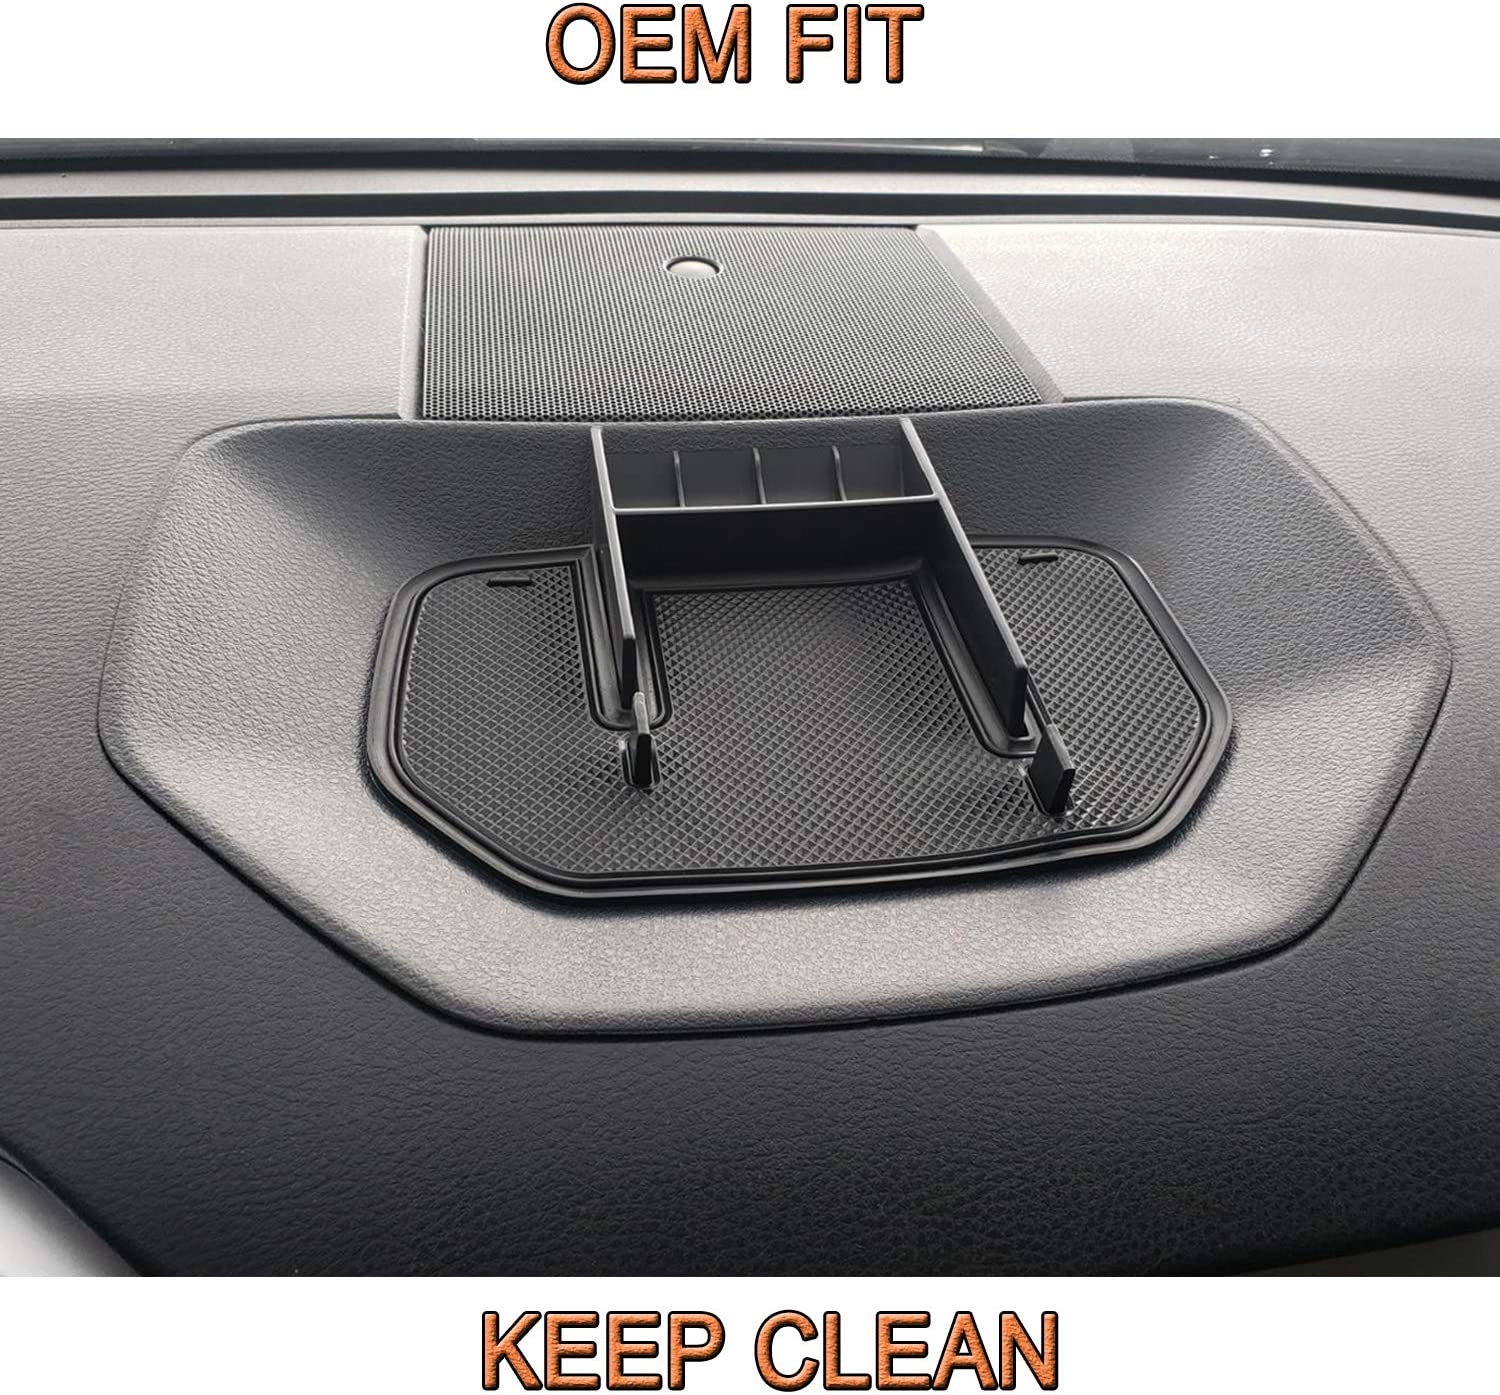 JKCOVER for Toyota Tundra Dash Center Console Table Storage Tray 2014-2019 Accessories,Multi-Function Dashboard Phone Holder Cradle ABS Black Materials Anti-Slip Backing Instrument Organizer